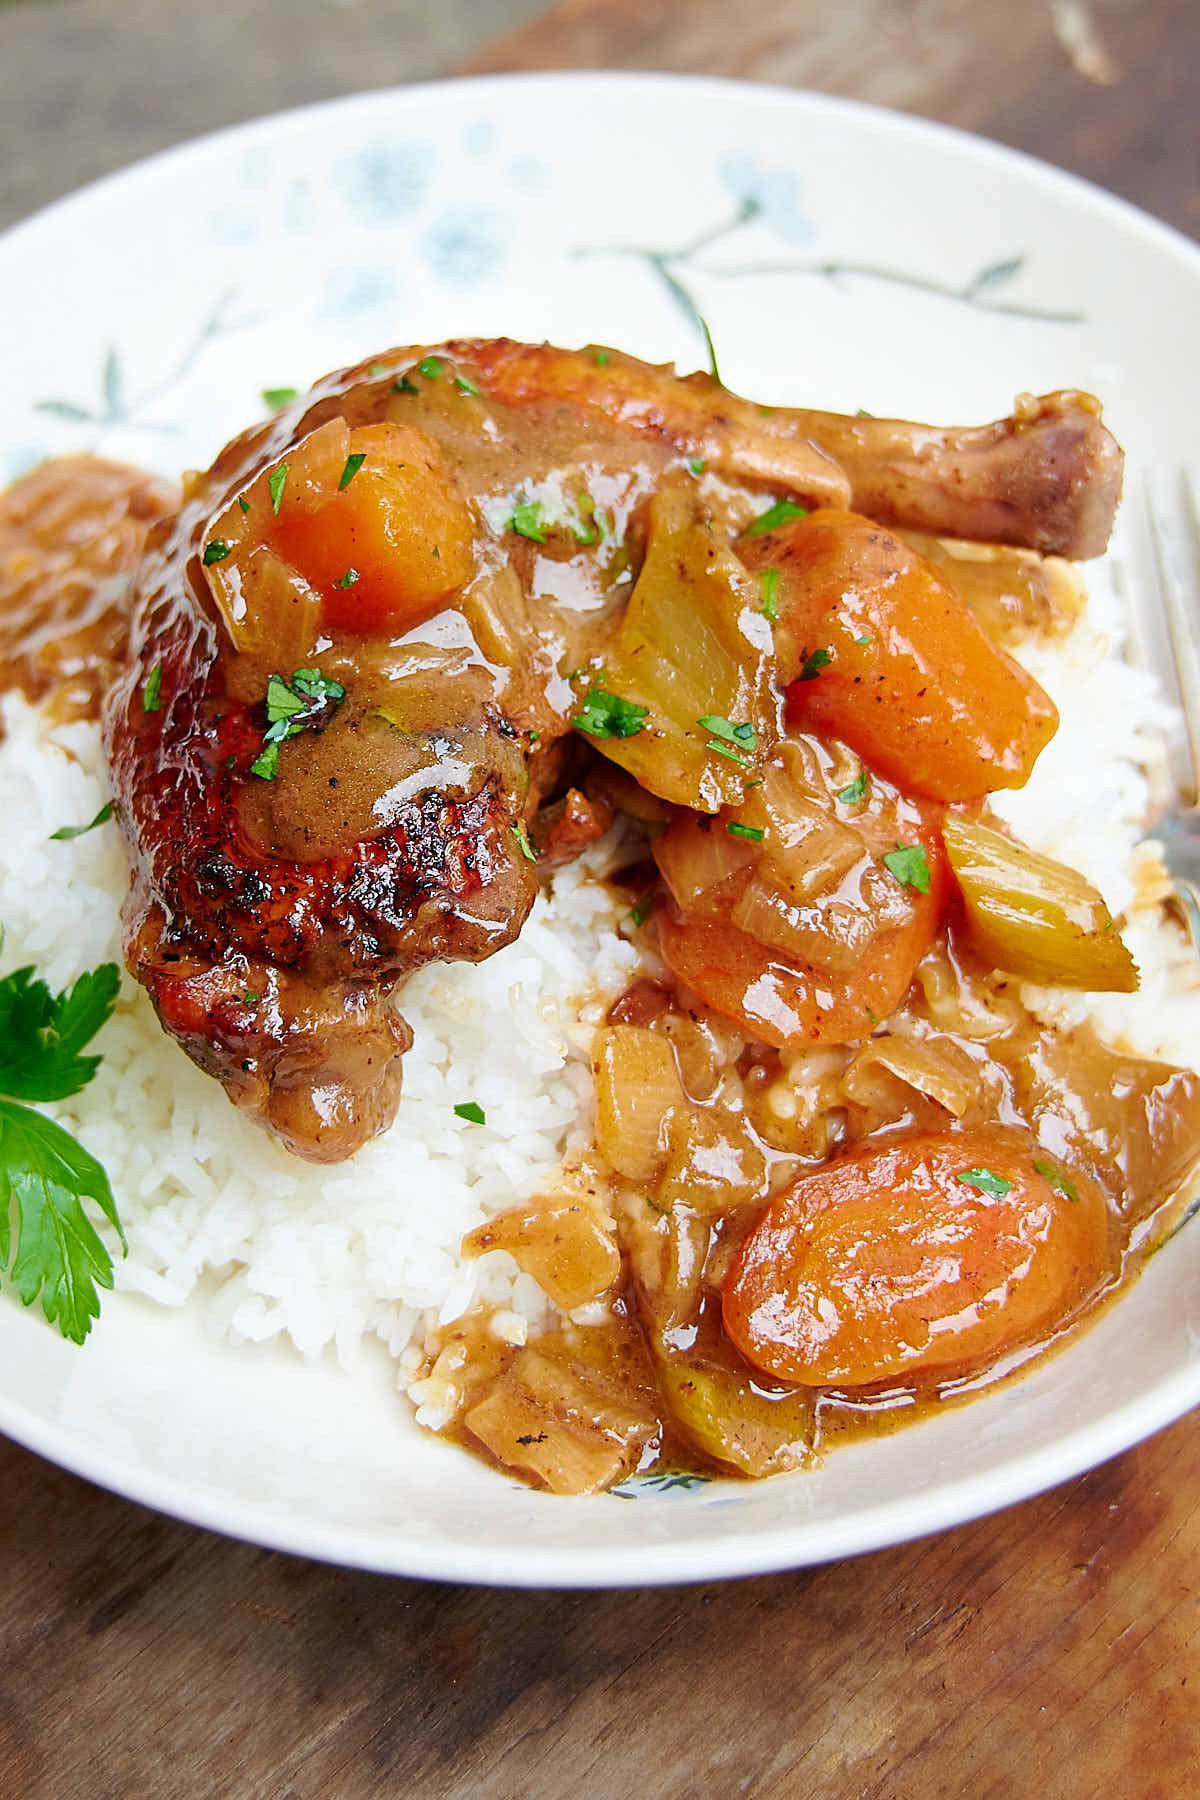 This Braised Chicken is fall-off-the-bone tender and exceptionally tasty. The ingredient list for this braised chicken is short and simple, while the flavors are deep and rich. The chicken is braised in gravy and there is not need to thicken the sauce later.   ifoodblogger.com